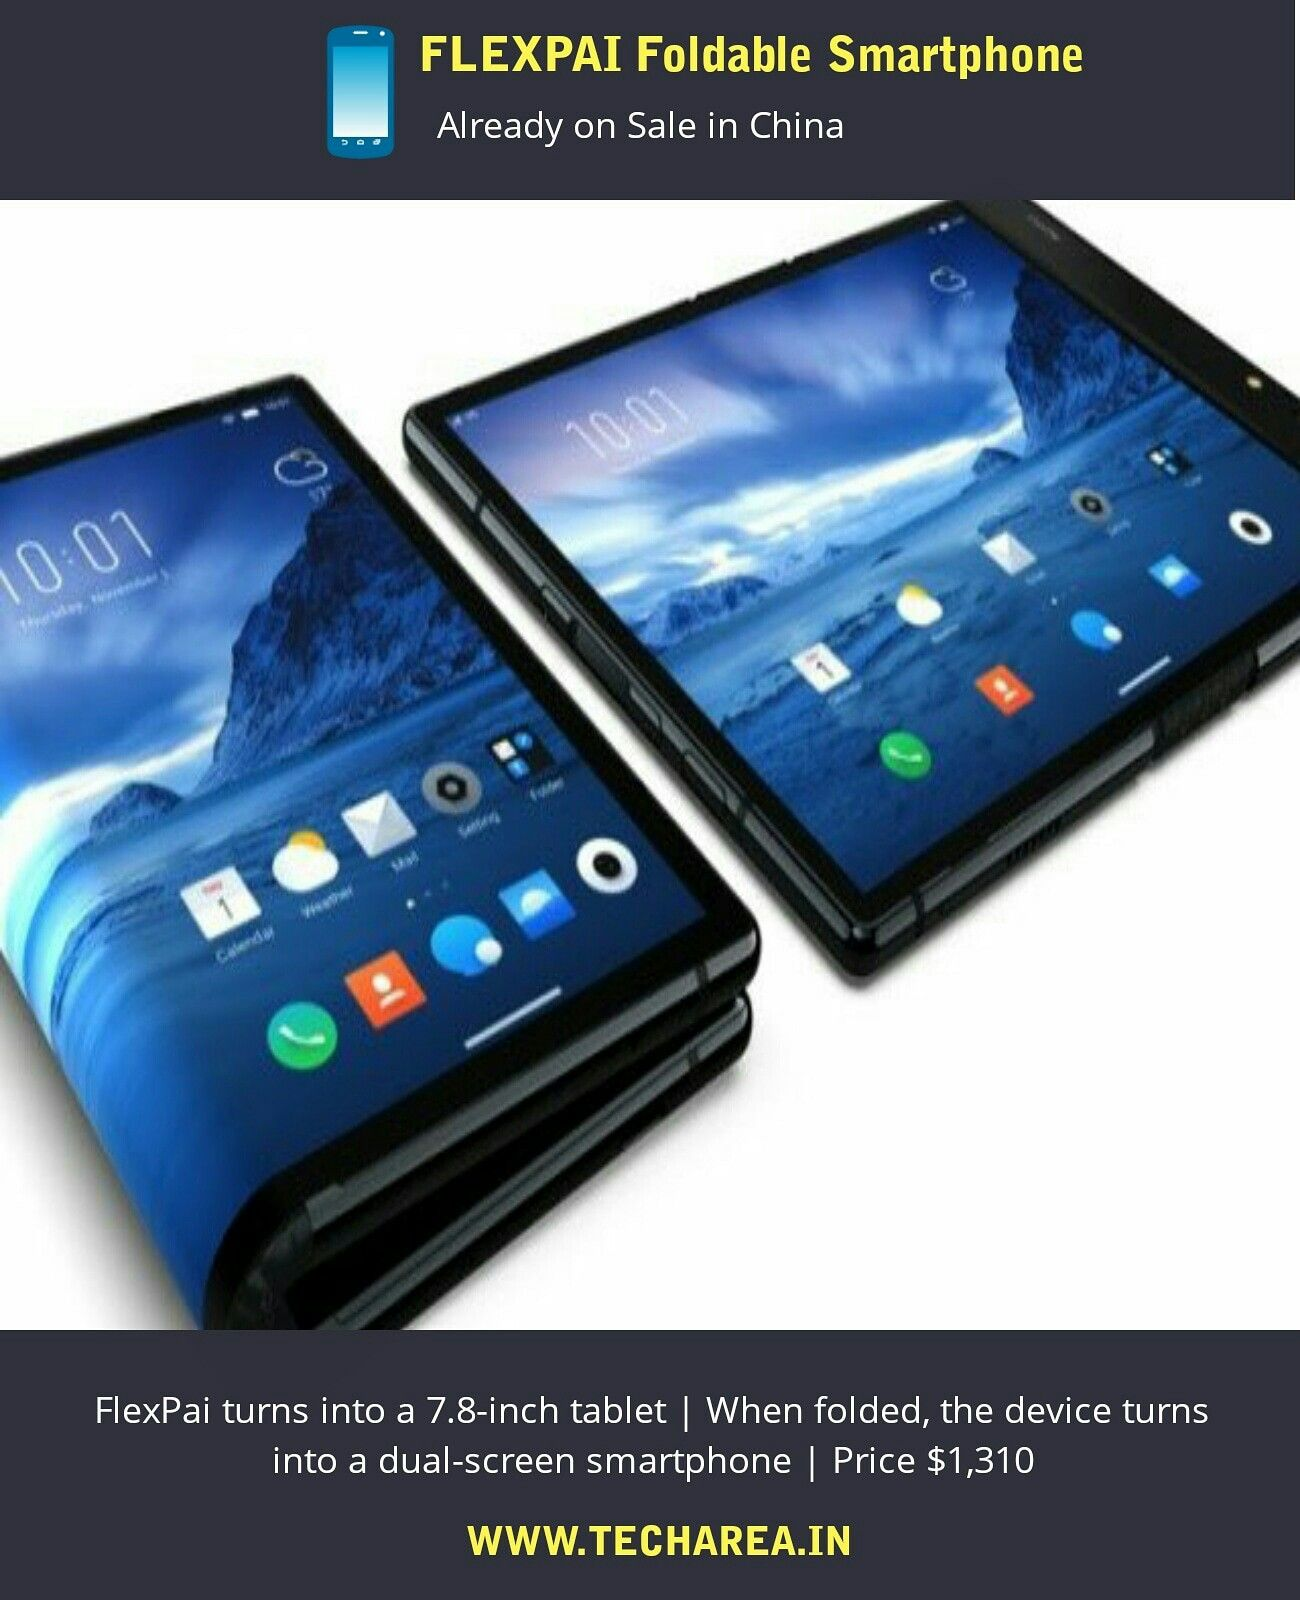 FlexiPai, the first official Foldable Smartphone visited